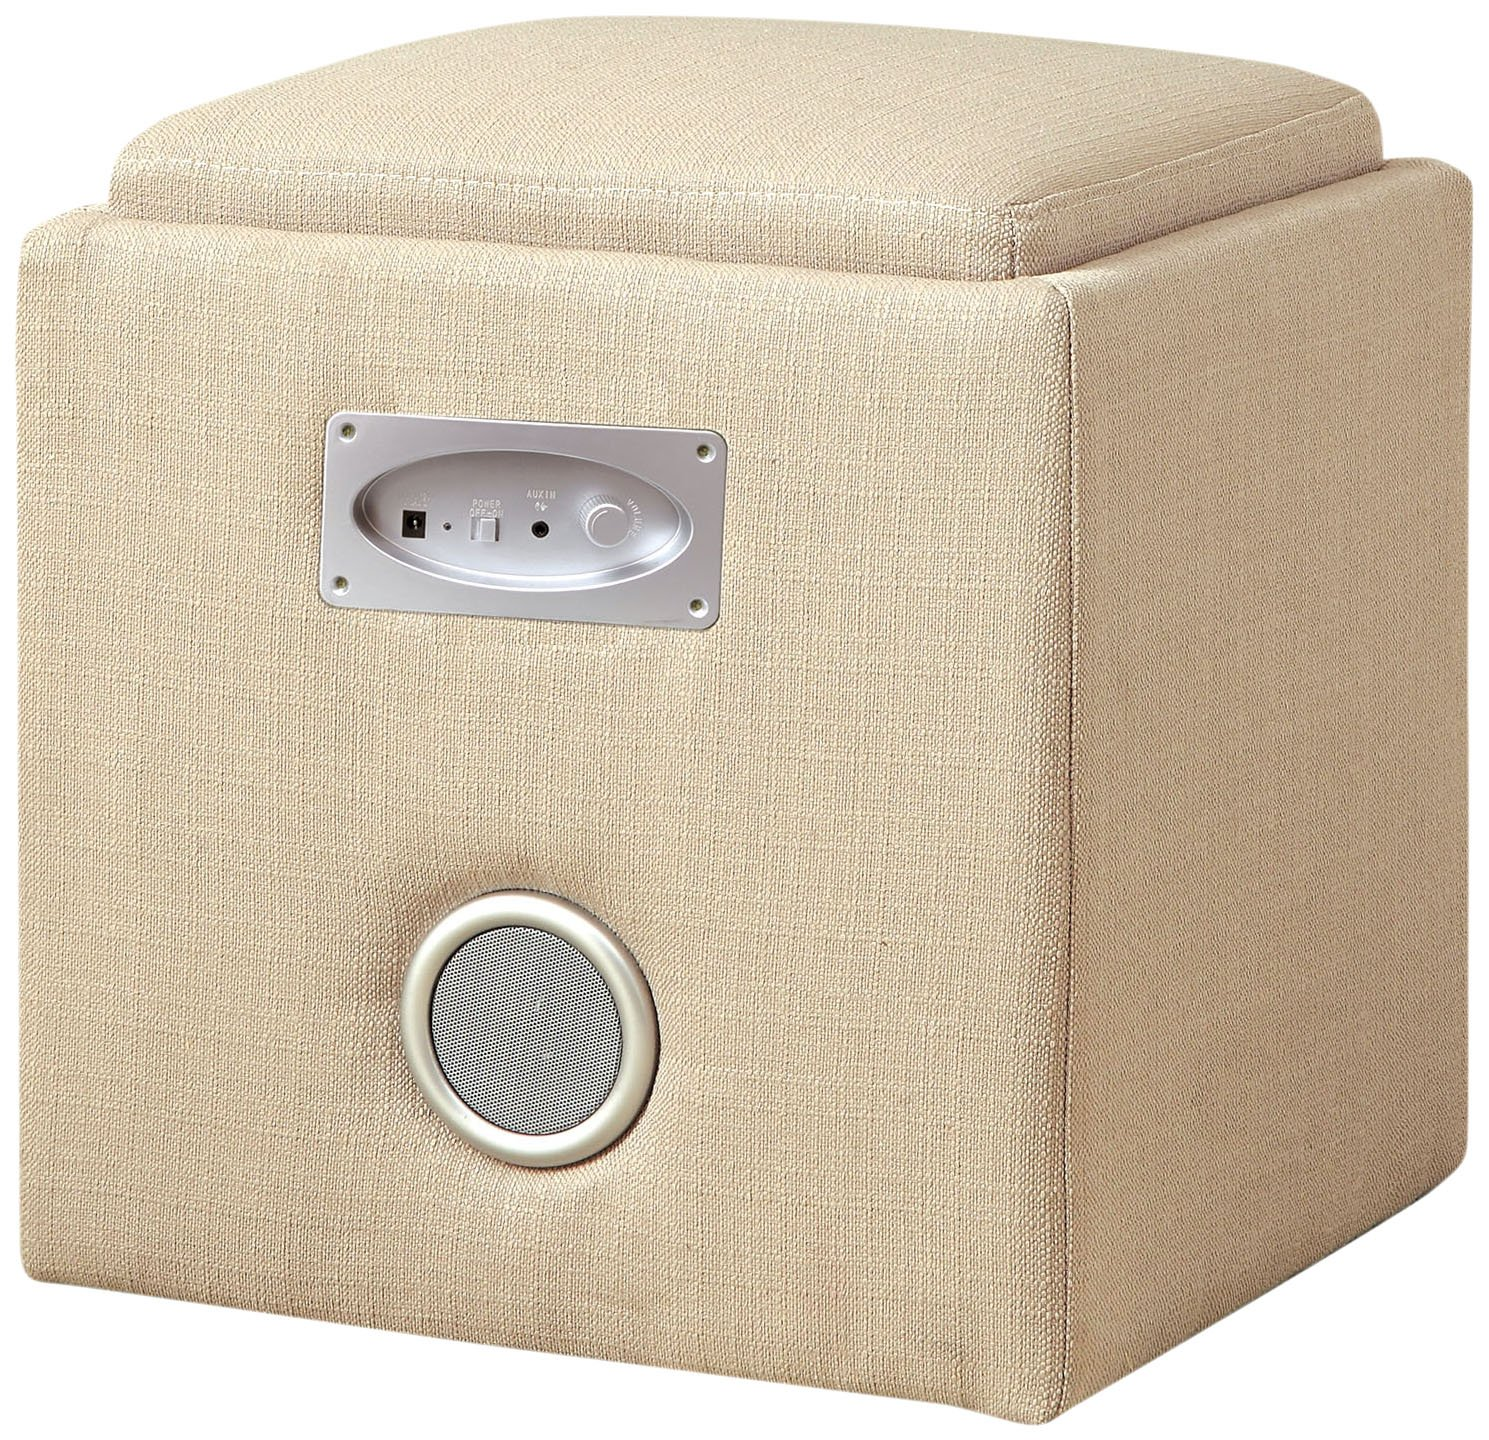 Furniture of America Uptempo Padded Flax Storage Ottoman with Bluetooth Speakers, Ivory by Furniture of America